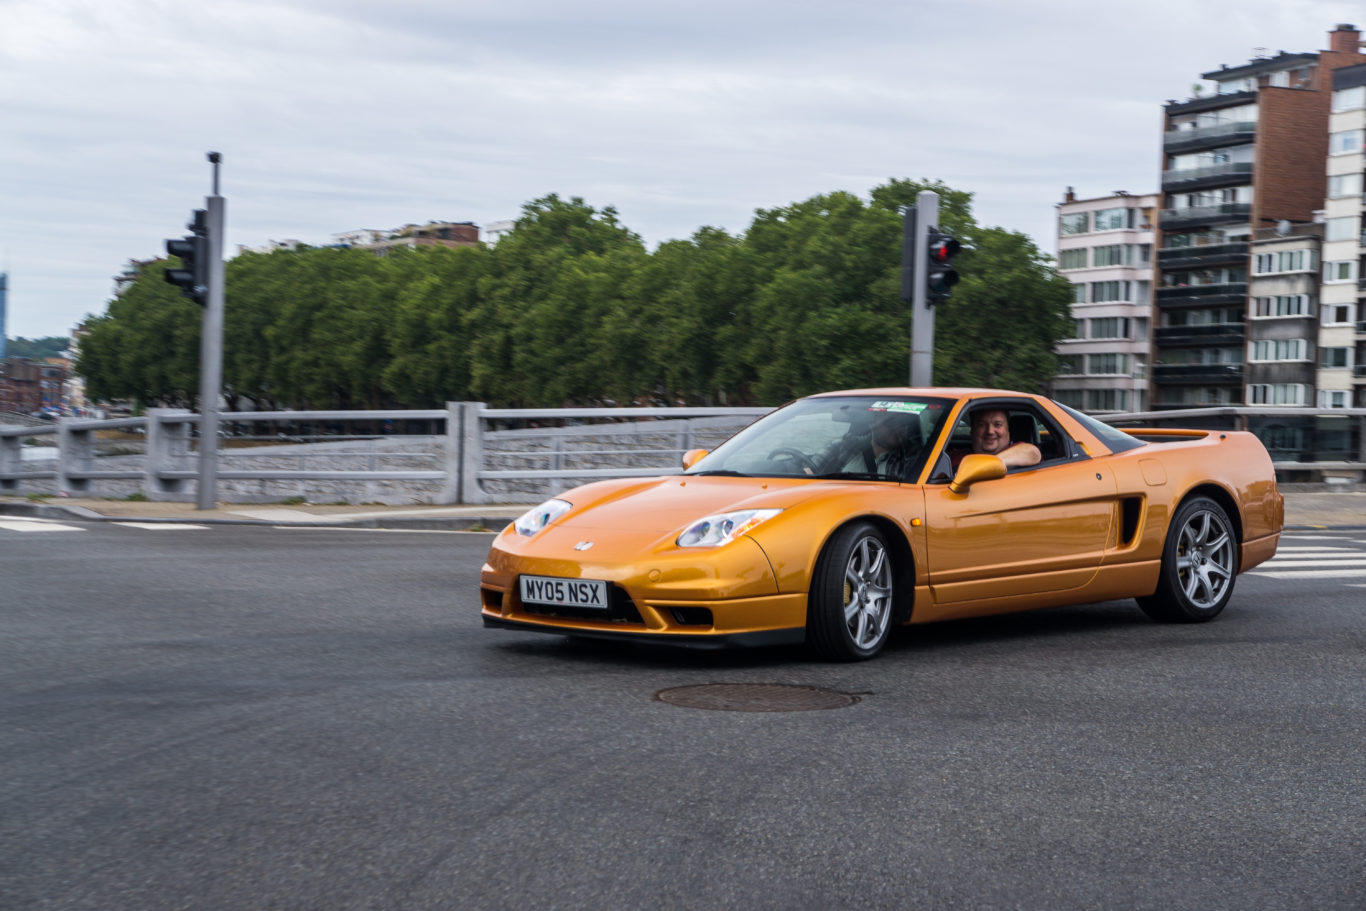 City driving isn't the classic NSX's friend